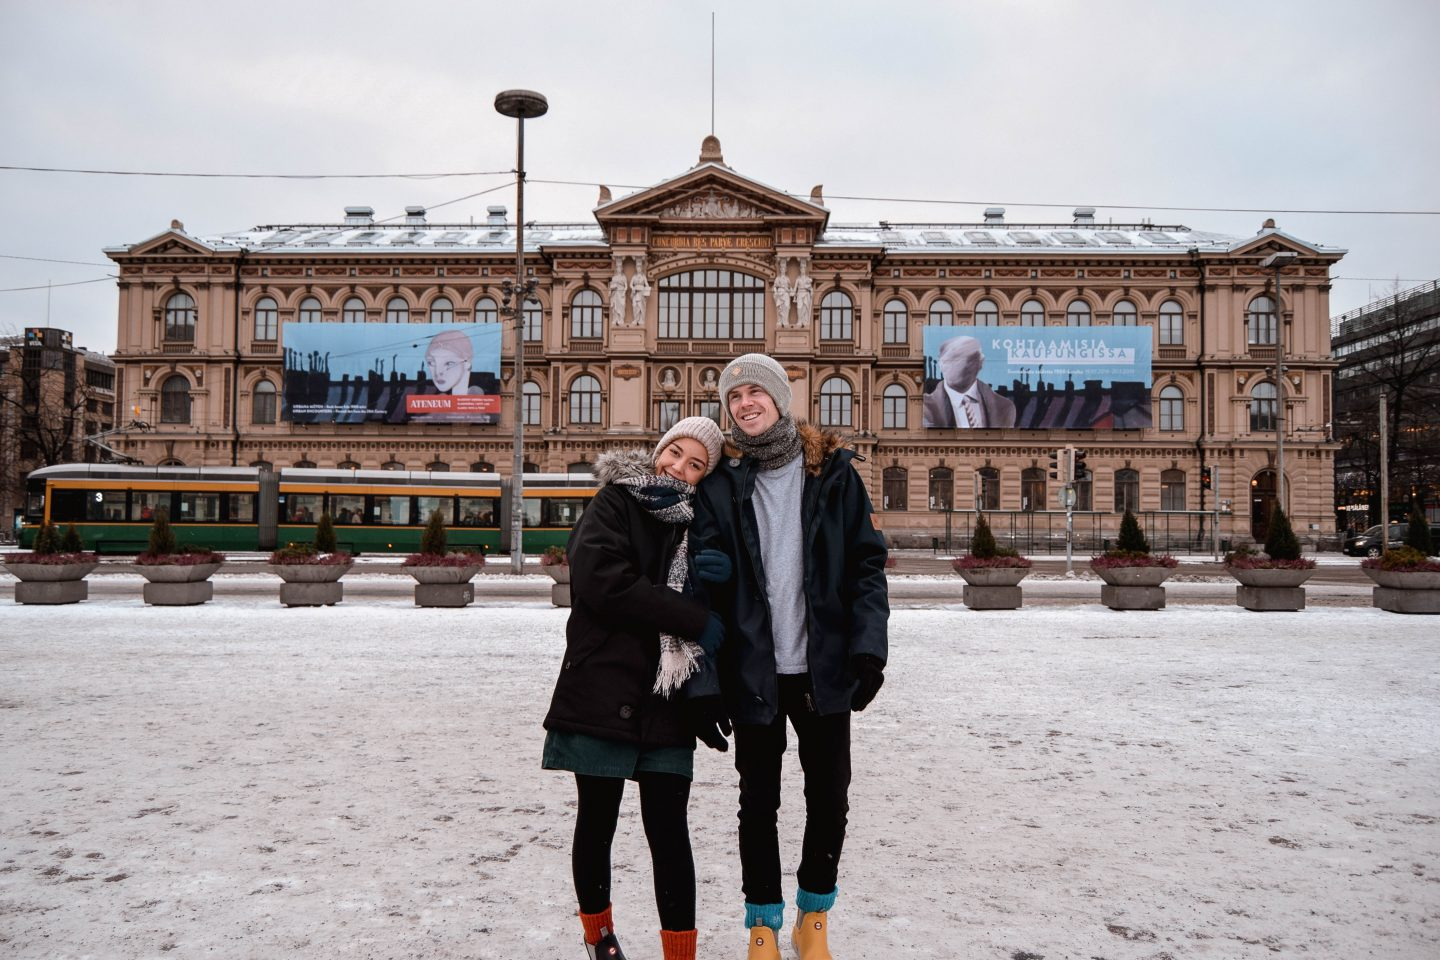 Best Museums In Helsinki – Our Top 3